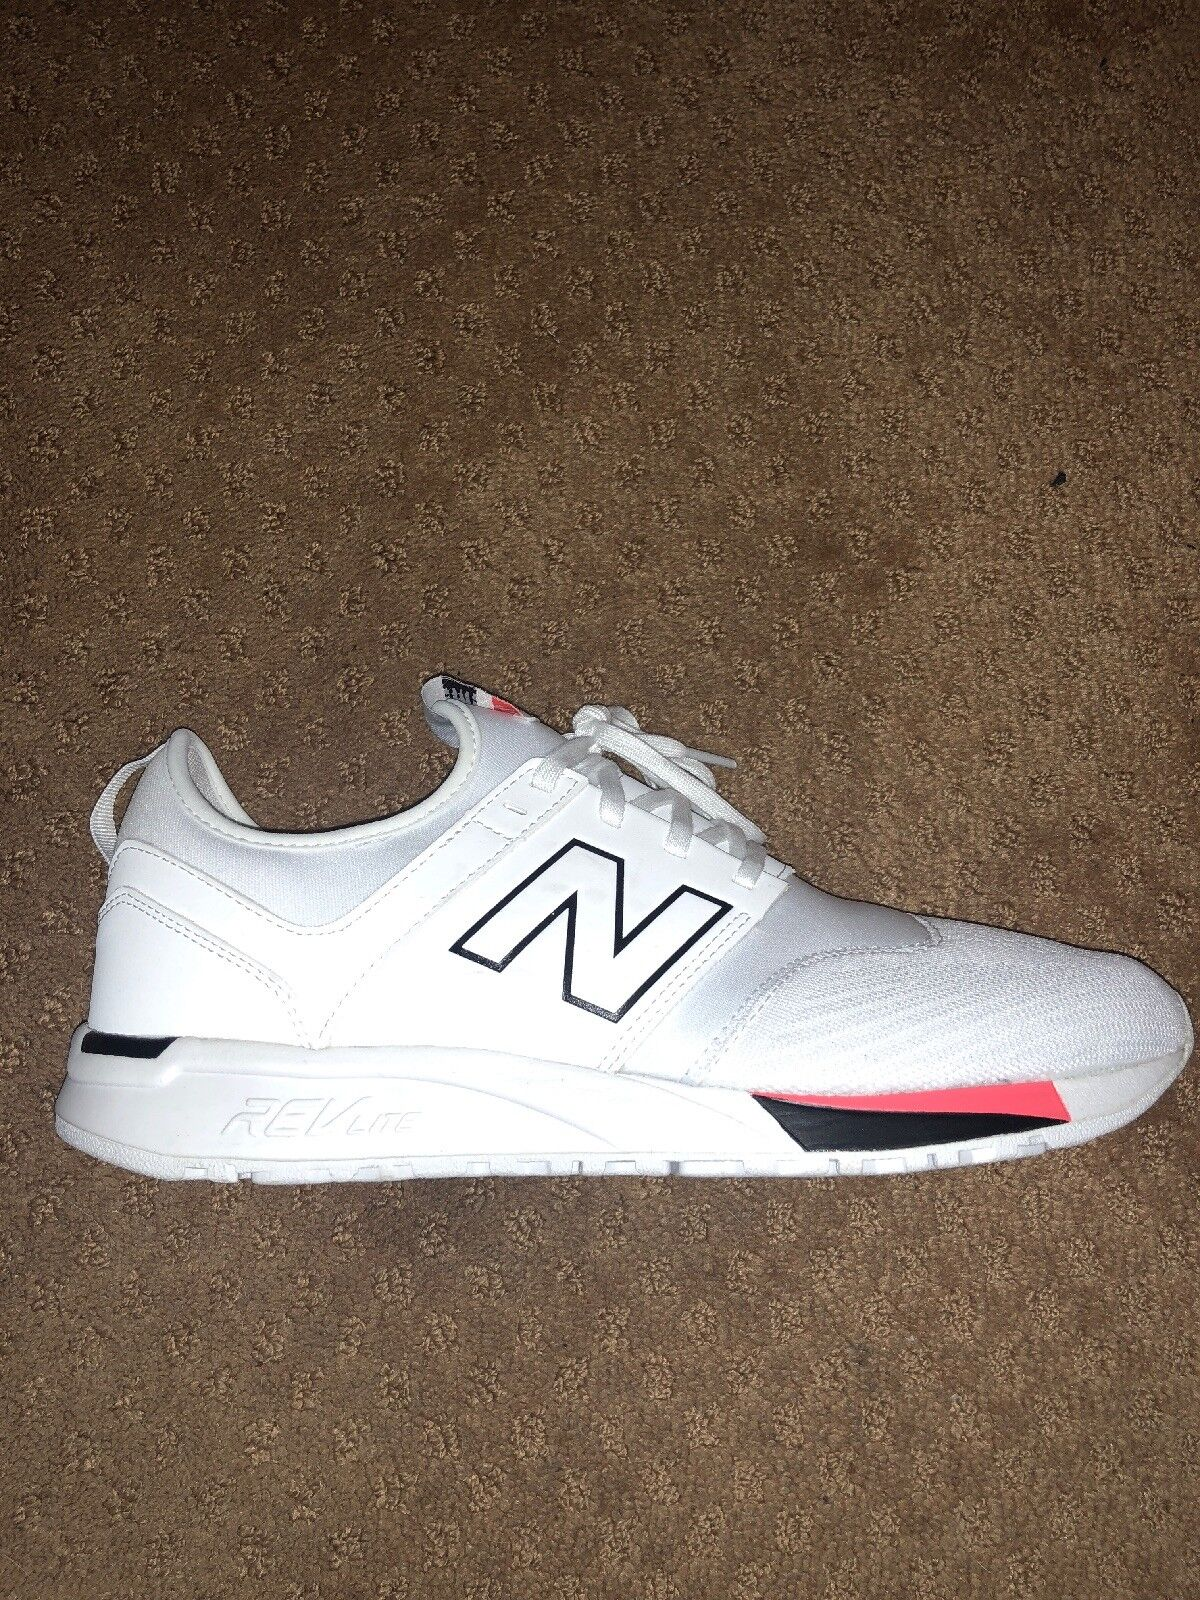 020dcade66b6 Man s Woman s New Balance MRL247RT Innovative design Orders are welcome  Acknowledgement Acknowledgement Acknowledgement feedback ed96d7